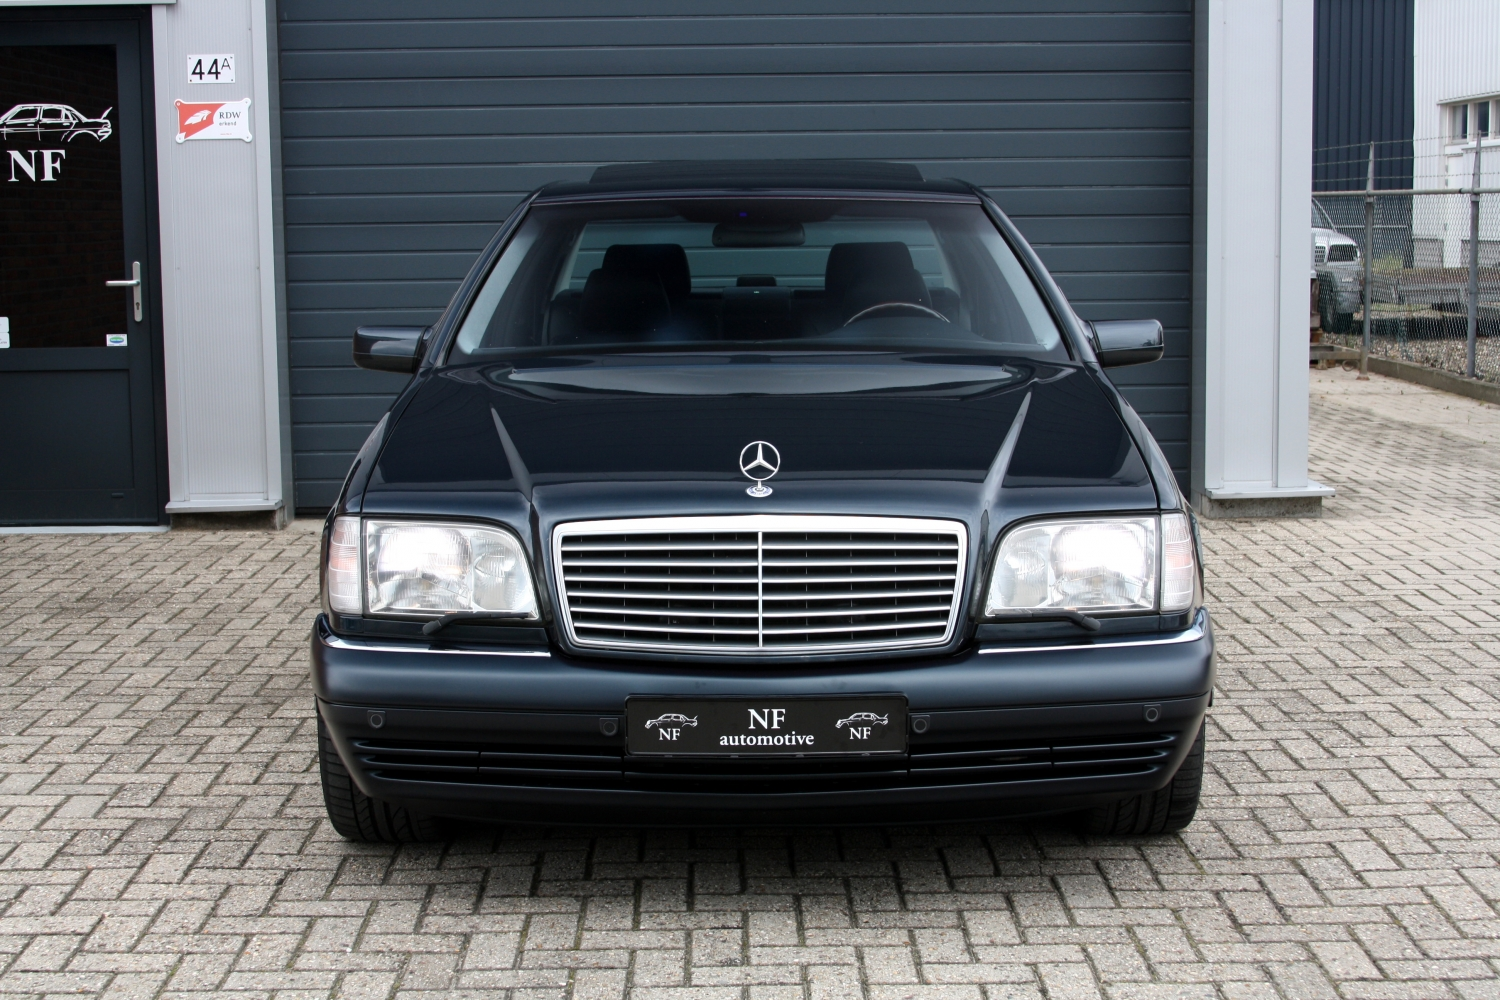 Mercedes W140 Titivation Page 1 Readers Cars